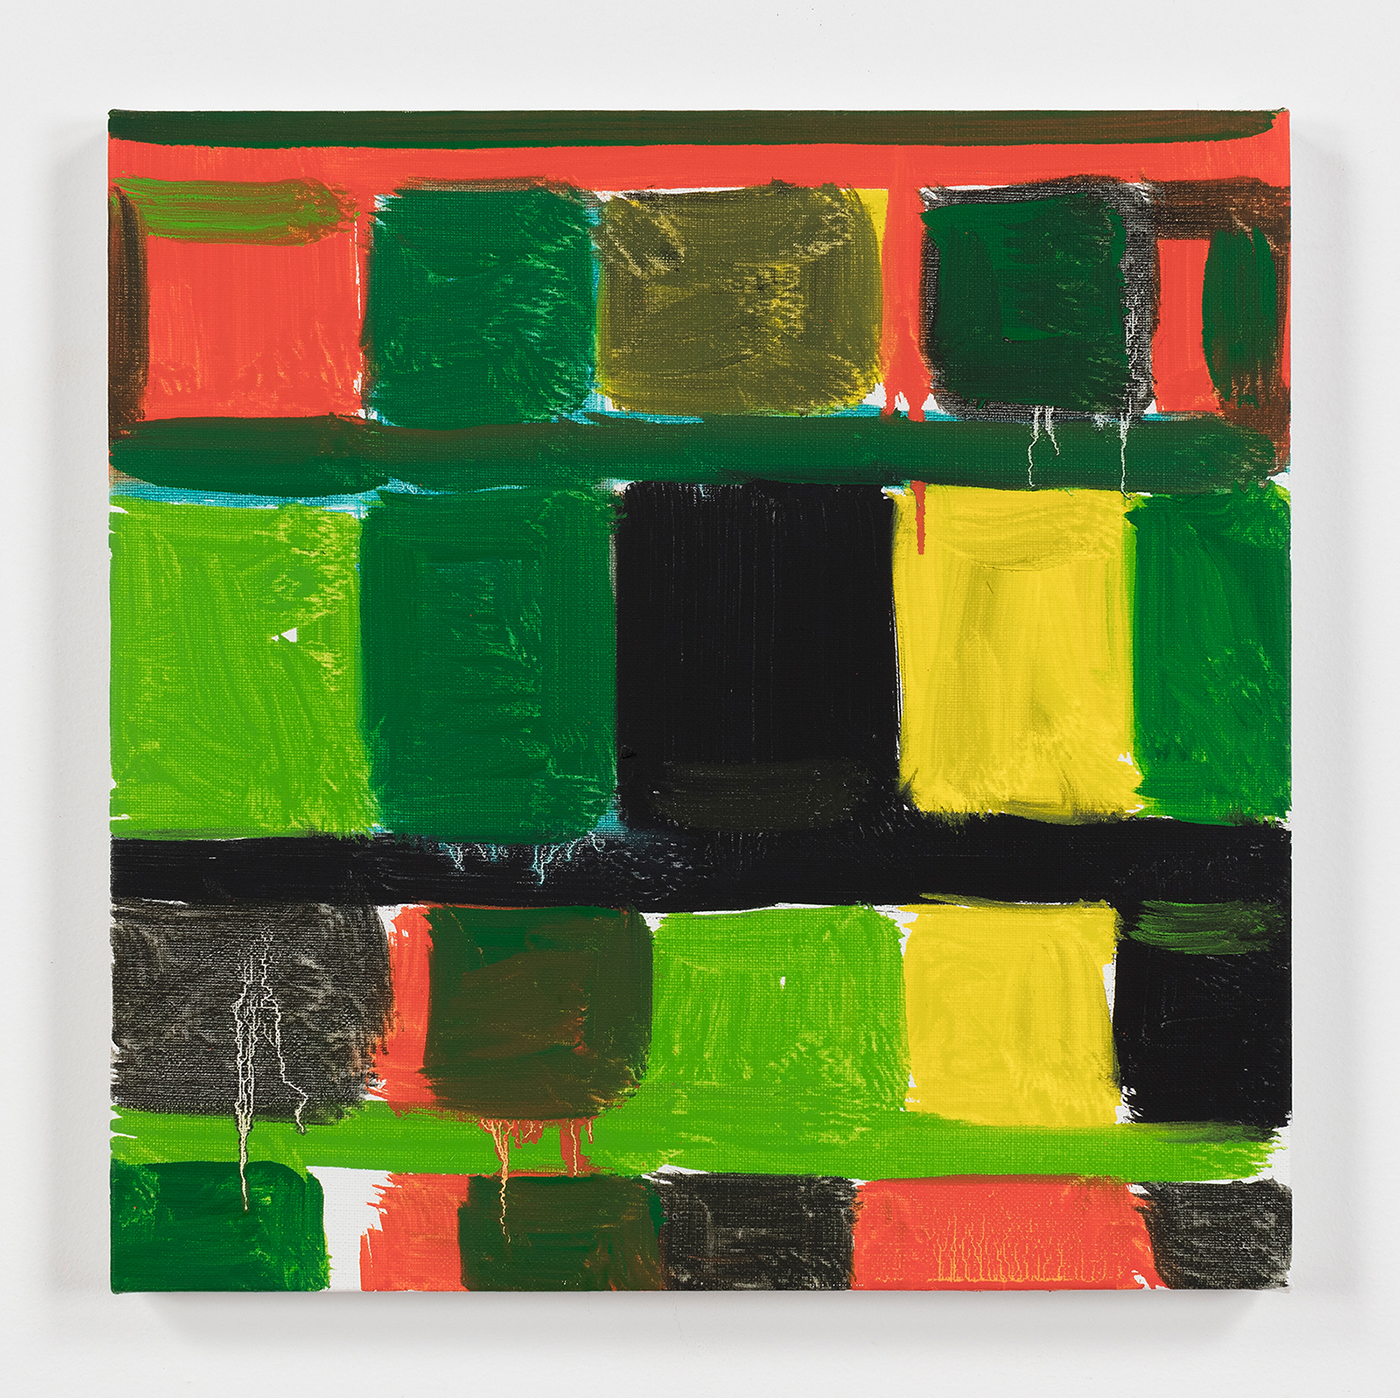 Stanley Whitney, Untitled, 2016, oil on linen, 12 x 12 inches (courtesy of the artist)